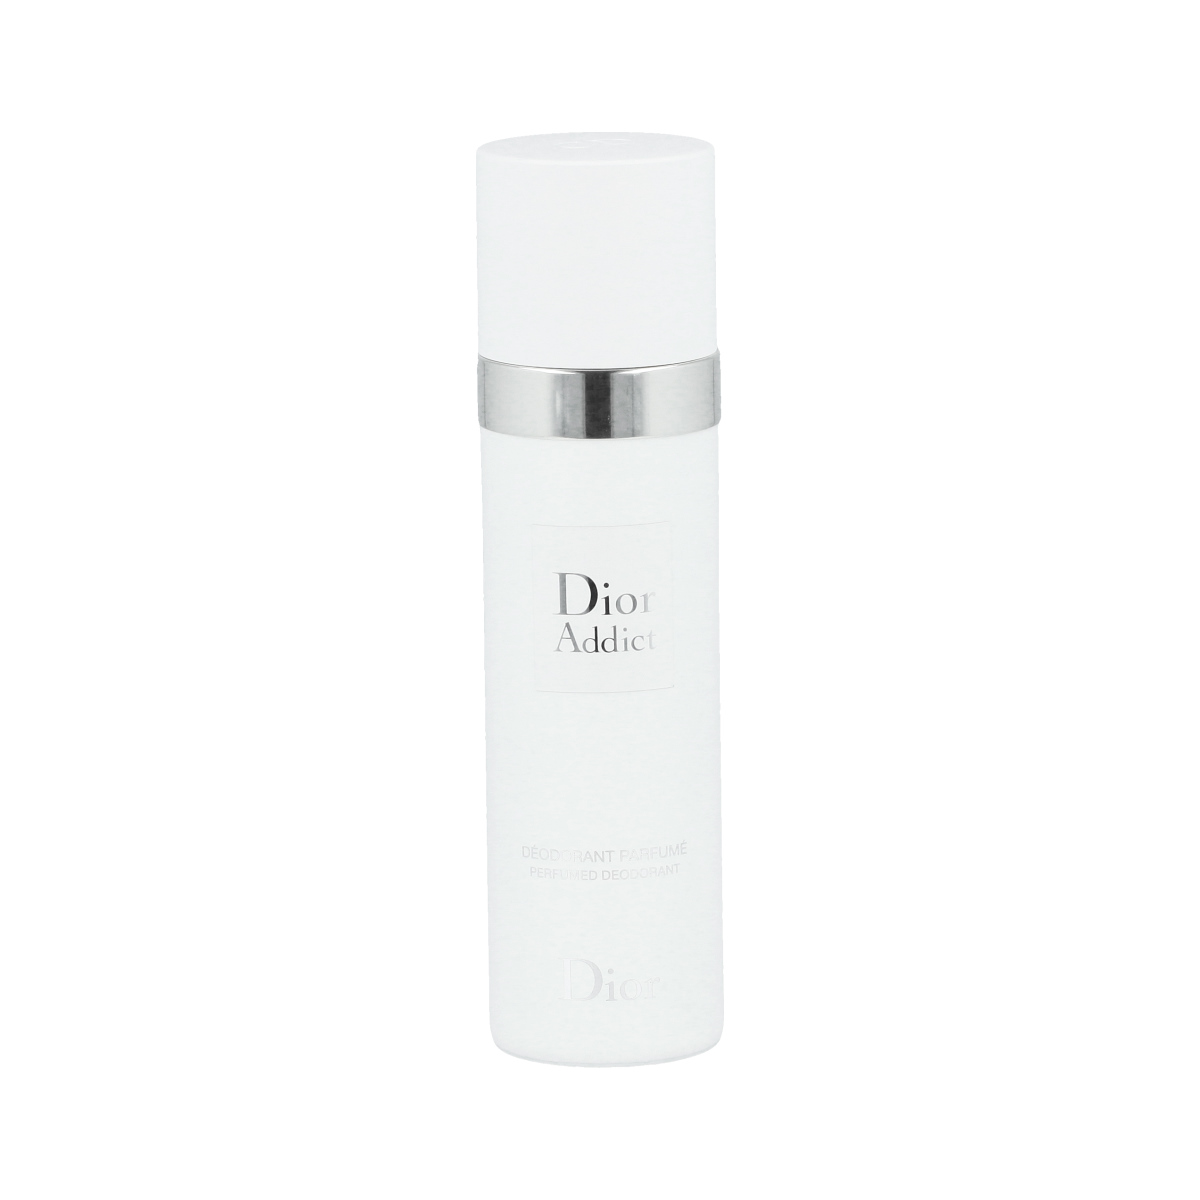 Dior Christian Addict DEO ve spreji 100 ml W